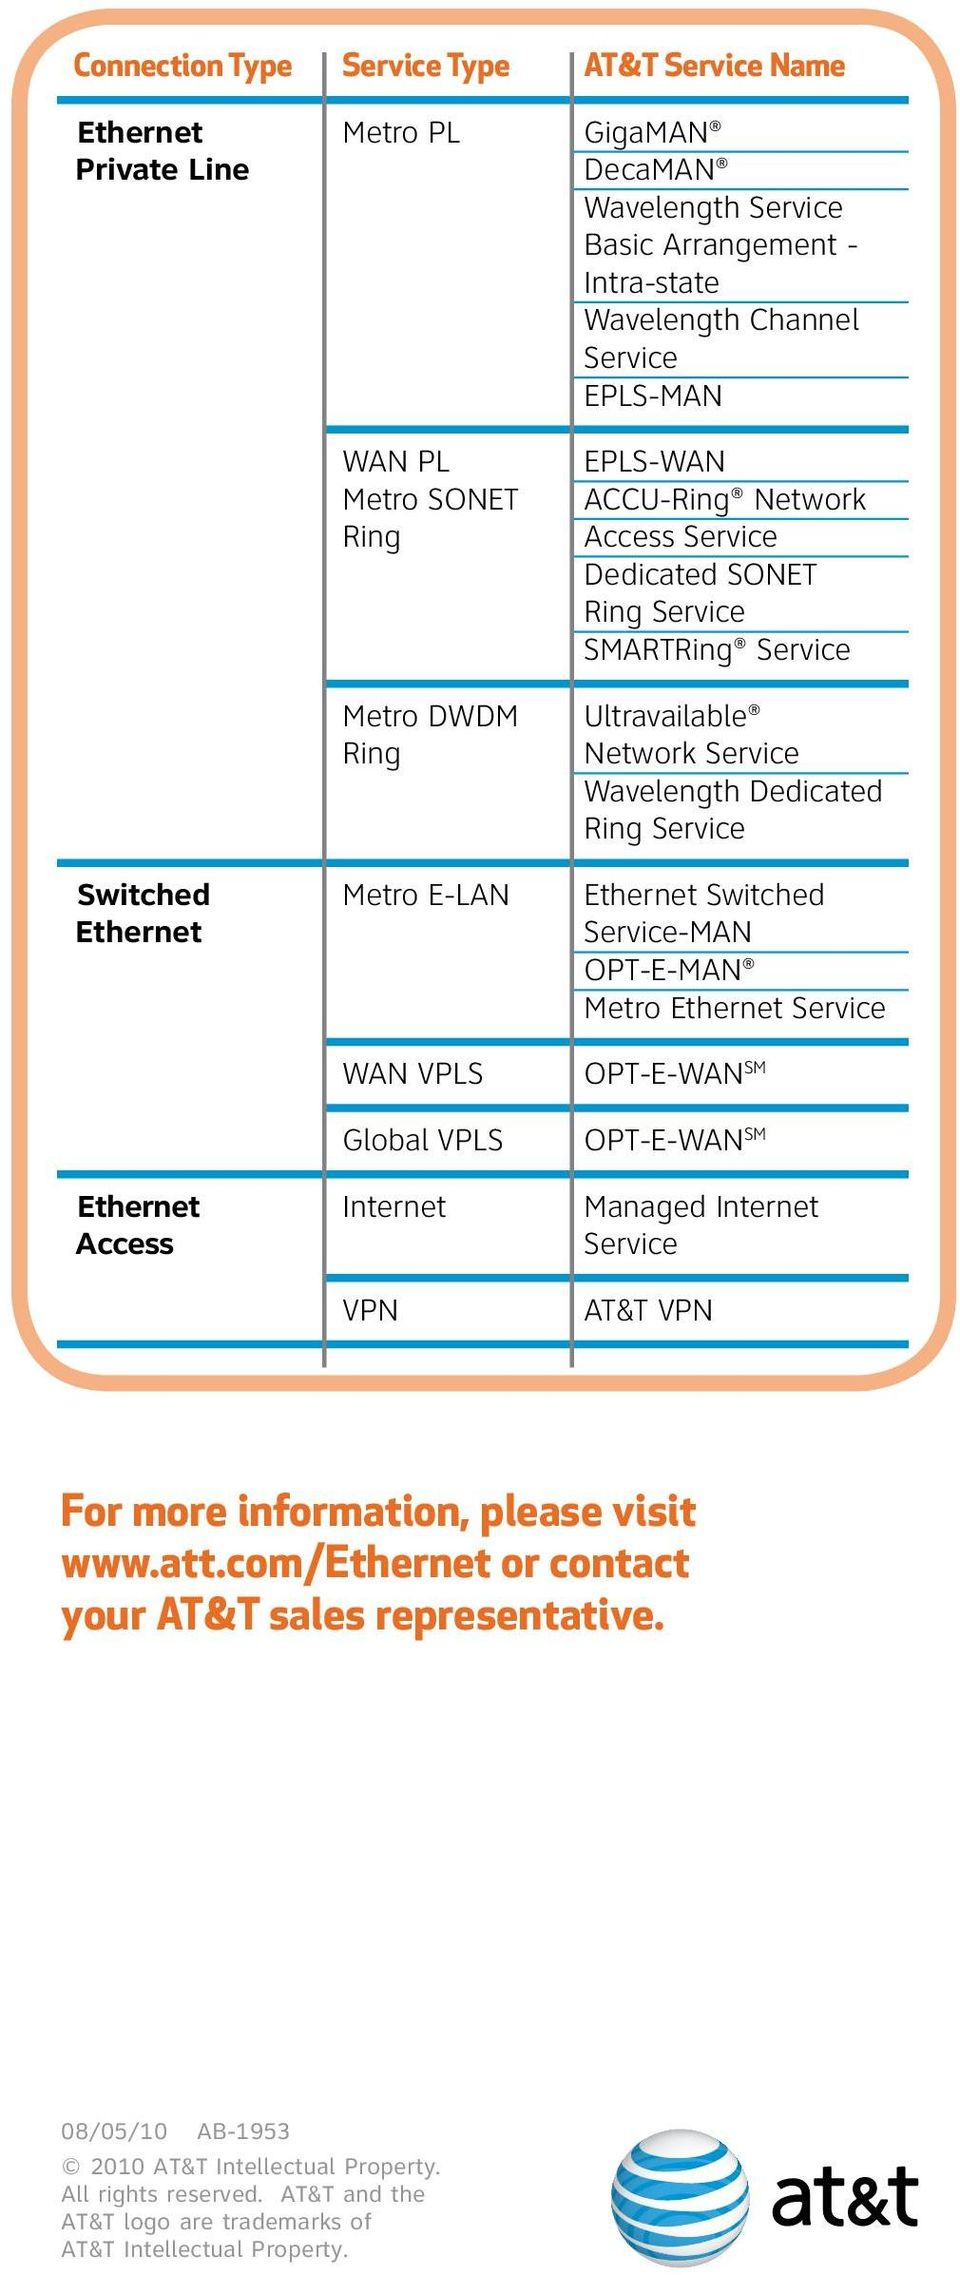 E-LAN Switched Service-MAN OPT-E-MAN Metro Service WAN VPLS Global VPLS OPT-E-WAN SM OPT-E-WAN SM Internet Managed Internet Access Service VPN AT&T VPN For more information, please visit www.